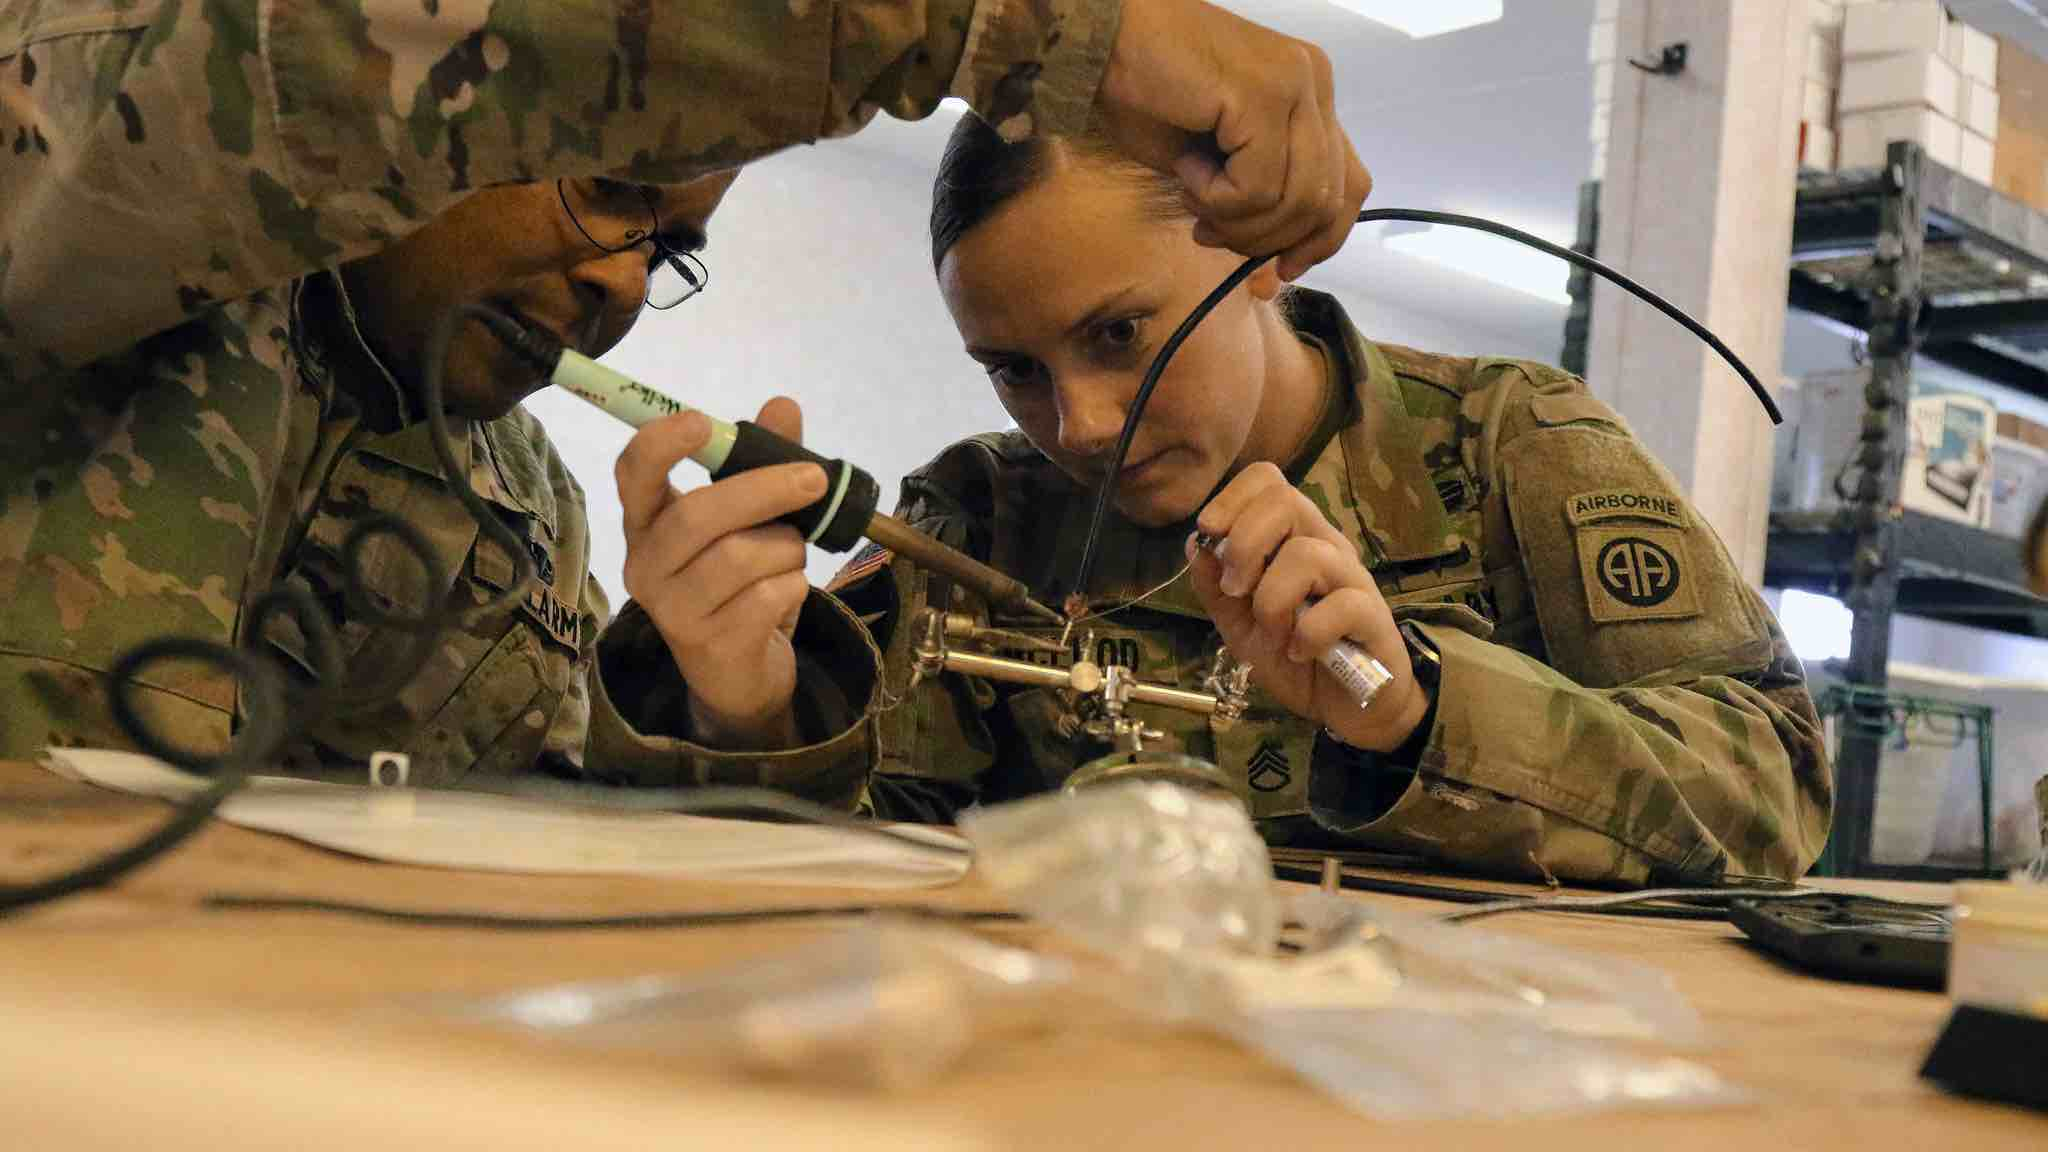 Staff Sgts. Luis Alicea (left) and Ashley McLeod of the 1st Brigade Combat Team, 82nd Airborne Division build an antenna during the Electronic Warfare competition on Fort Bragg, N.C., May 7, 2019. The competition is a division-level team event designed to evaluate new skills being used on the battlefield in the electromagnetic environment. (Photo by Pvt. Chantel Green)